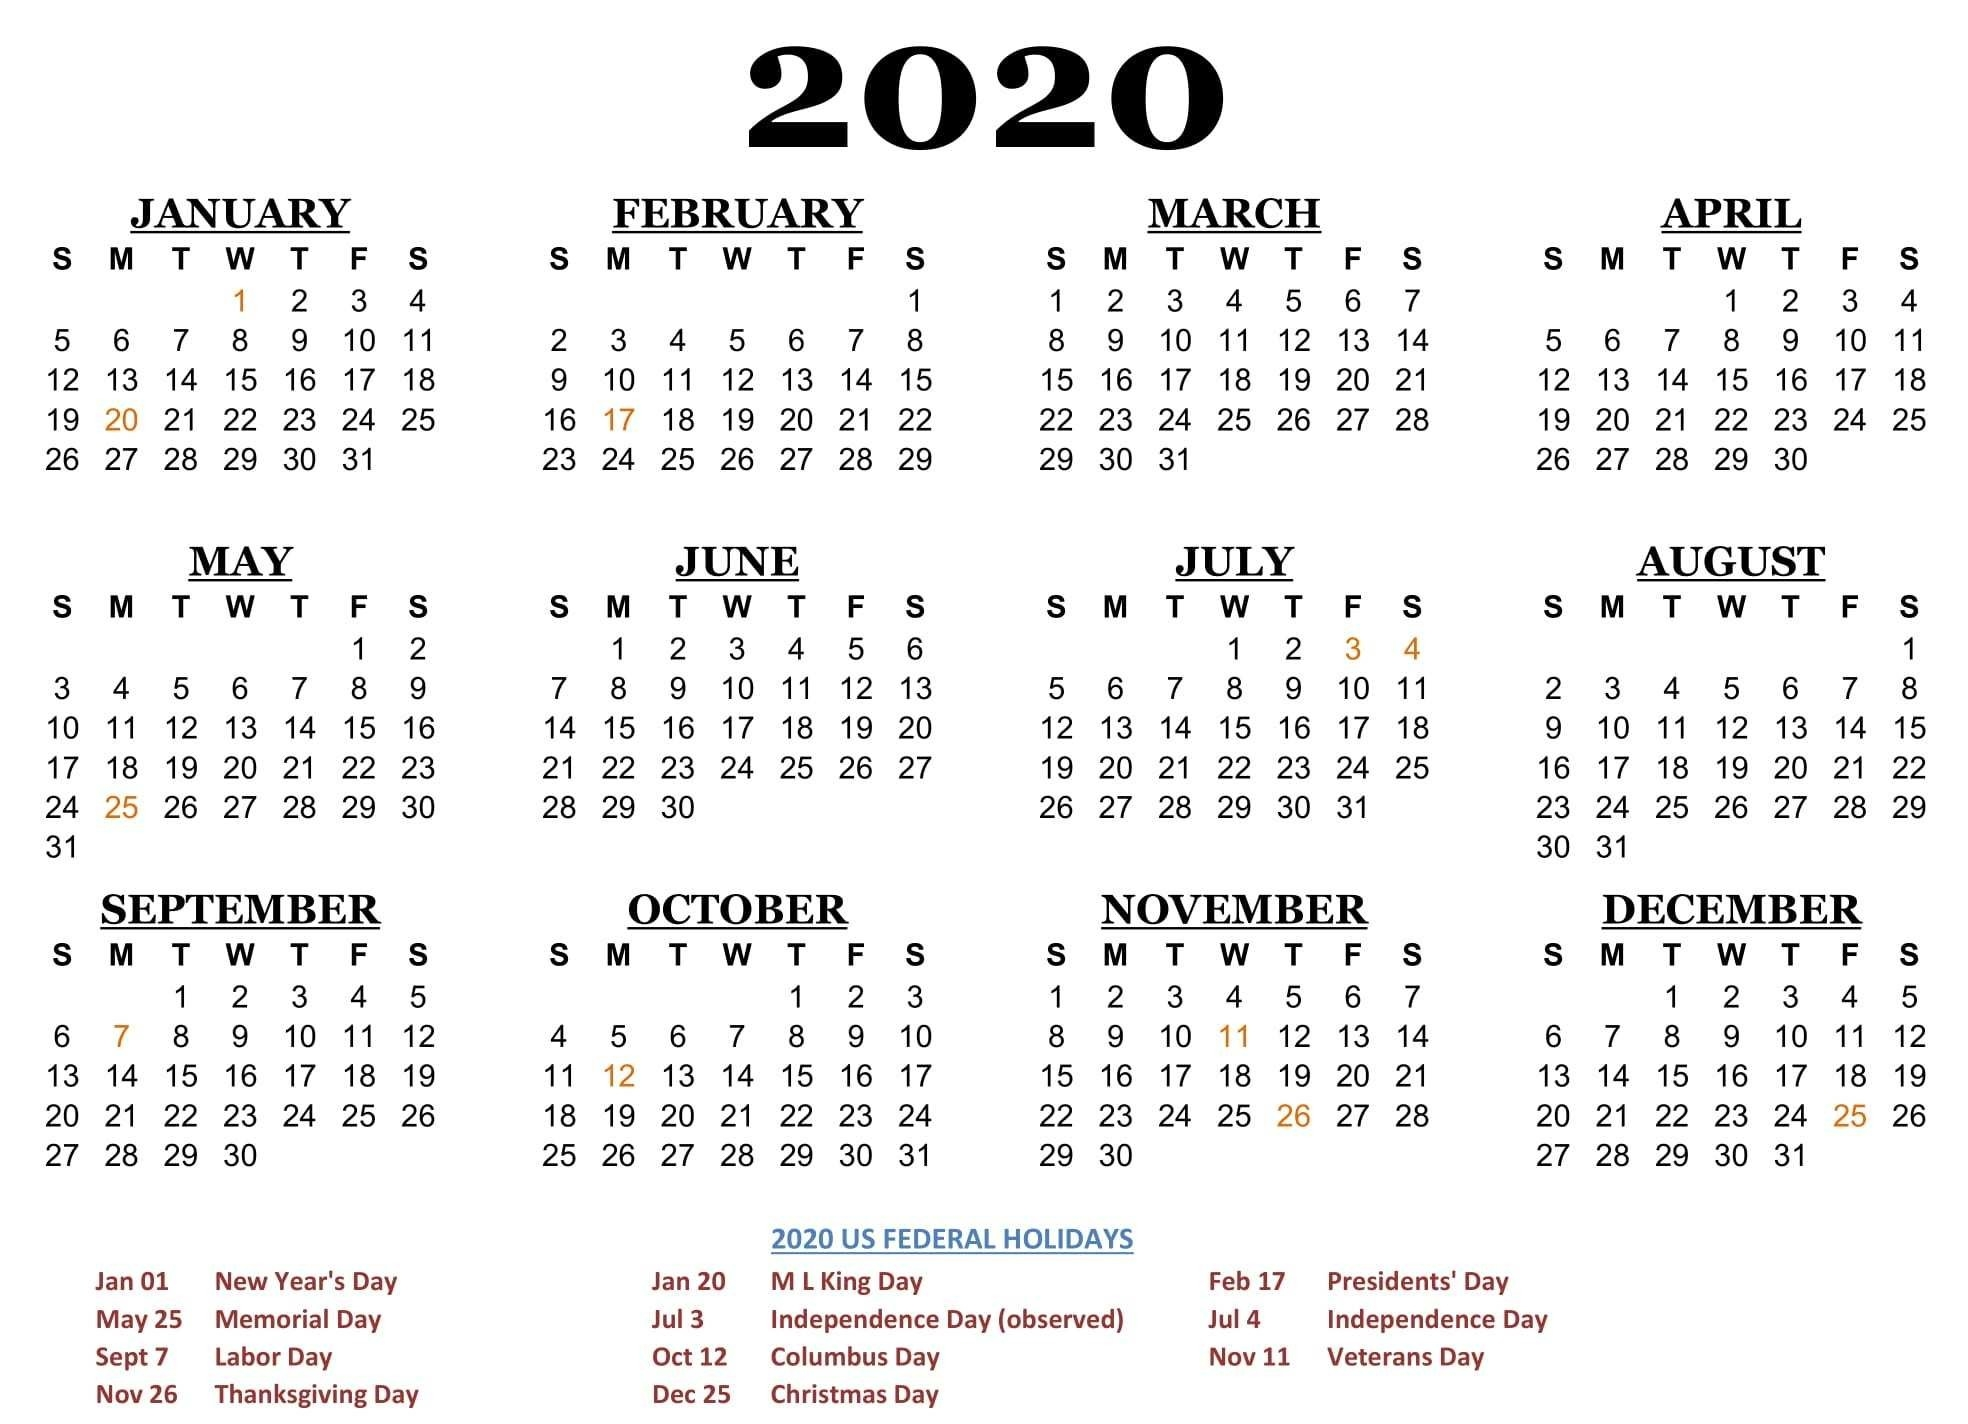 2020 One Page Calendar Printable Download | Calendarbuzz  2020 Calendar Printable One Page